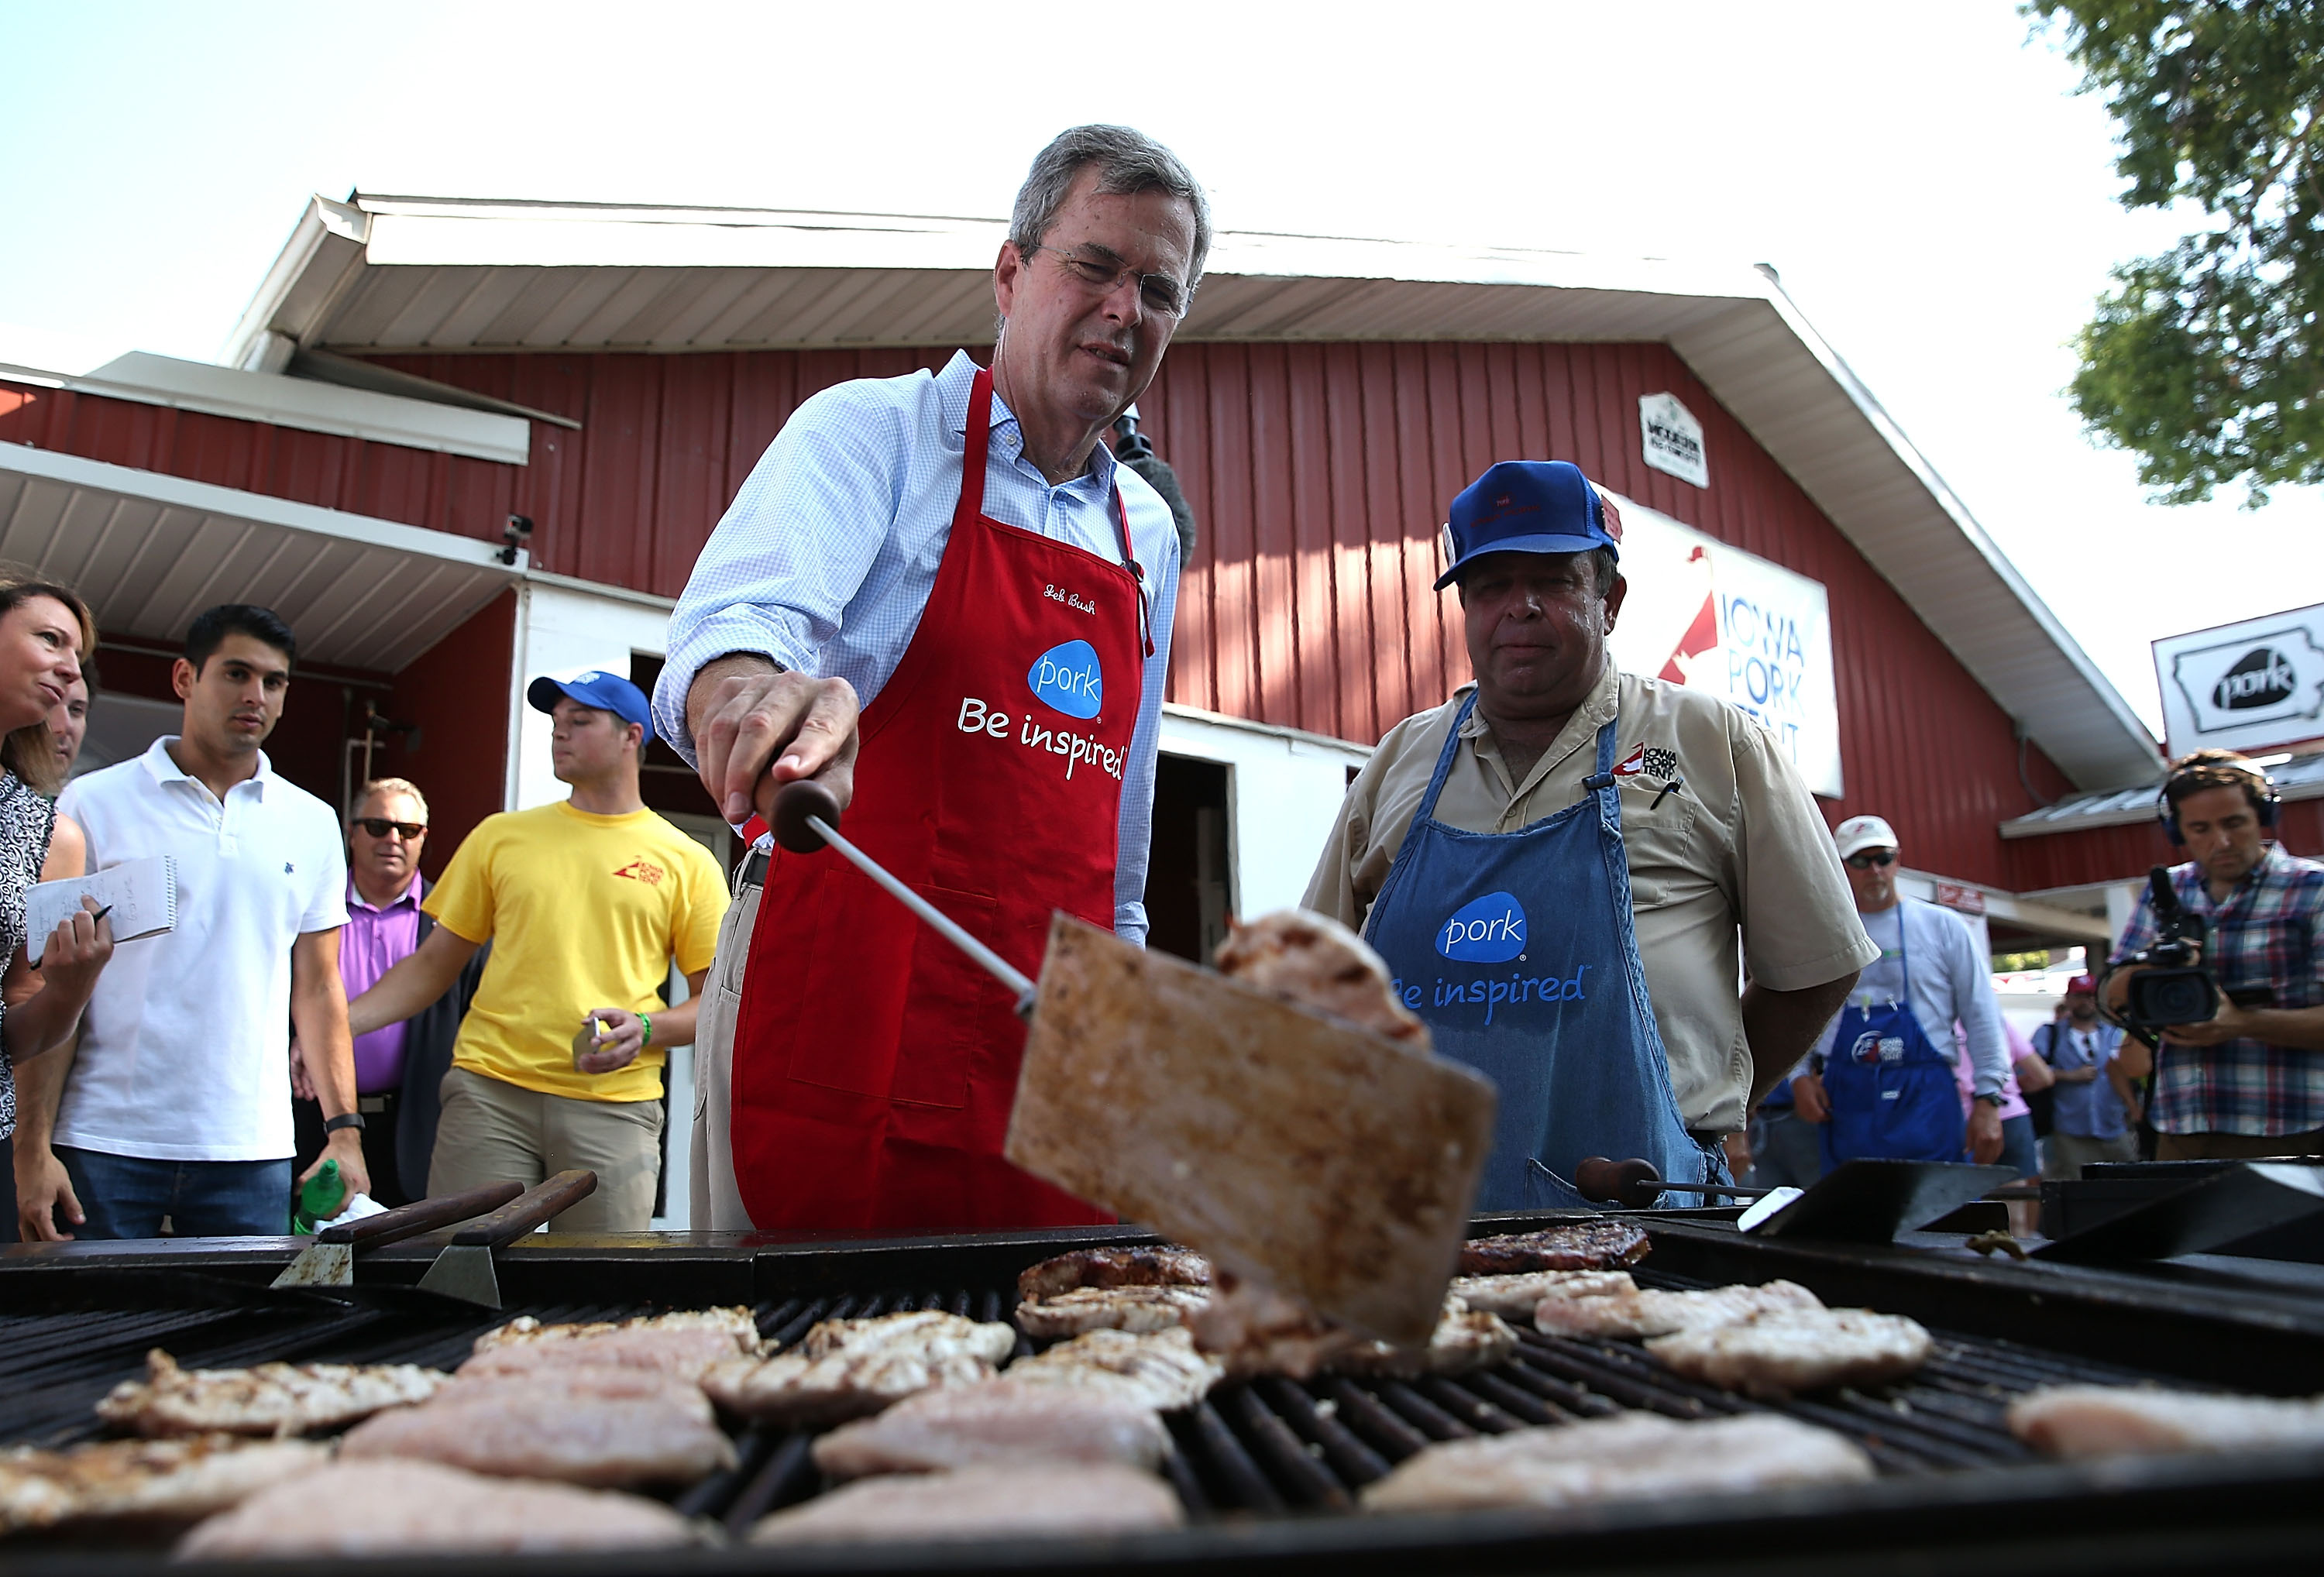 Unlike his trip to the Iowa State Fair, Jeb Bush's visit to The Varsity did not include work on the grill.